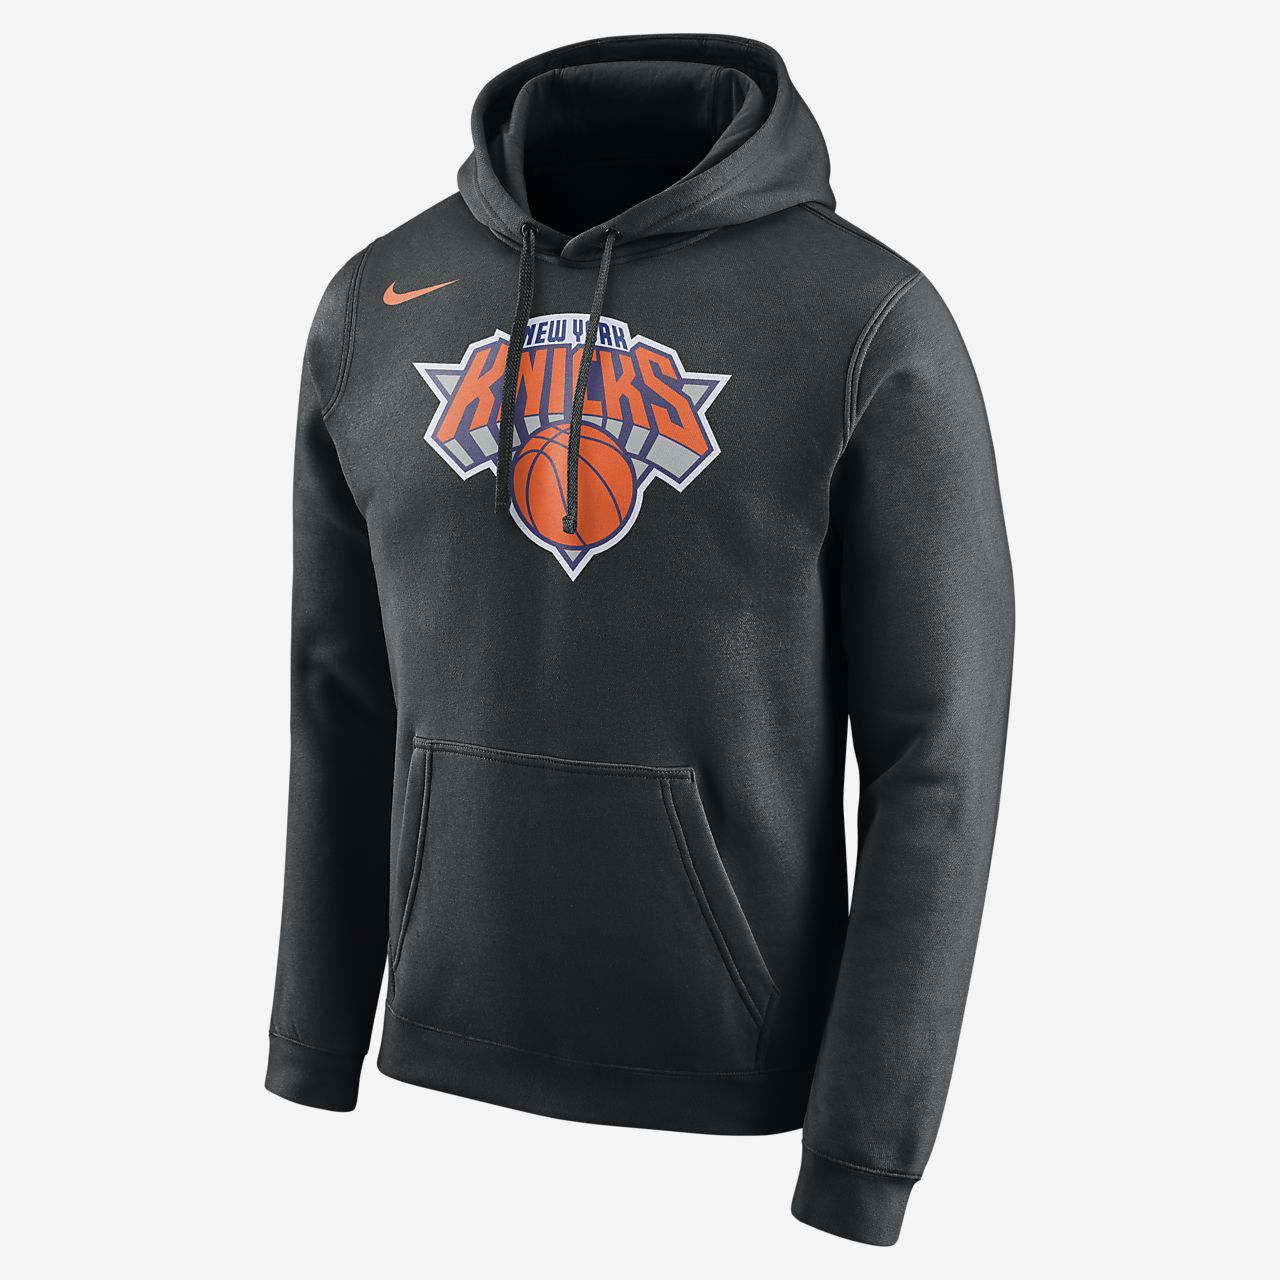 Cheap Nike Hoodies For Boys | The River City News